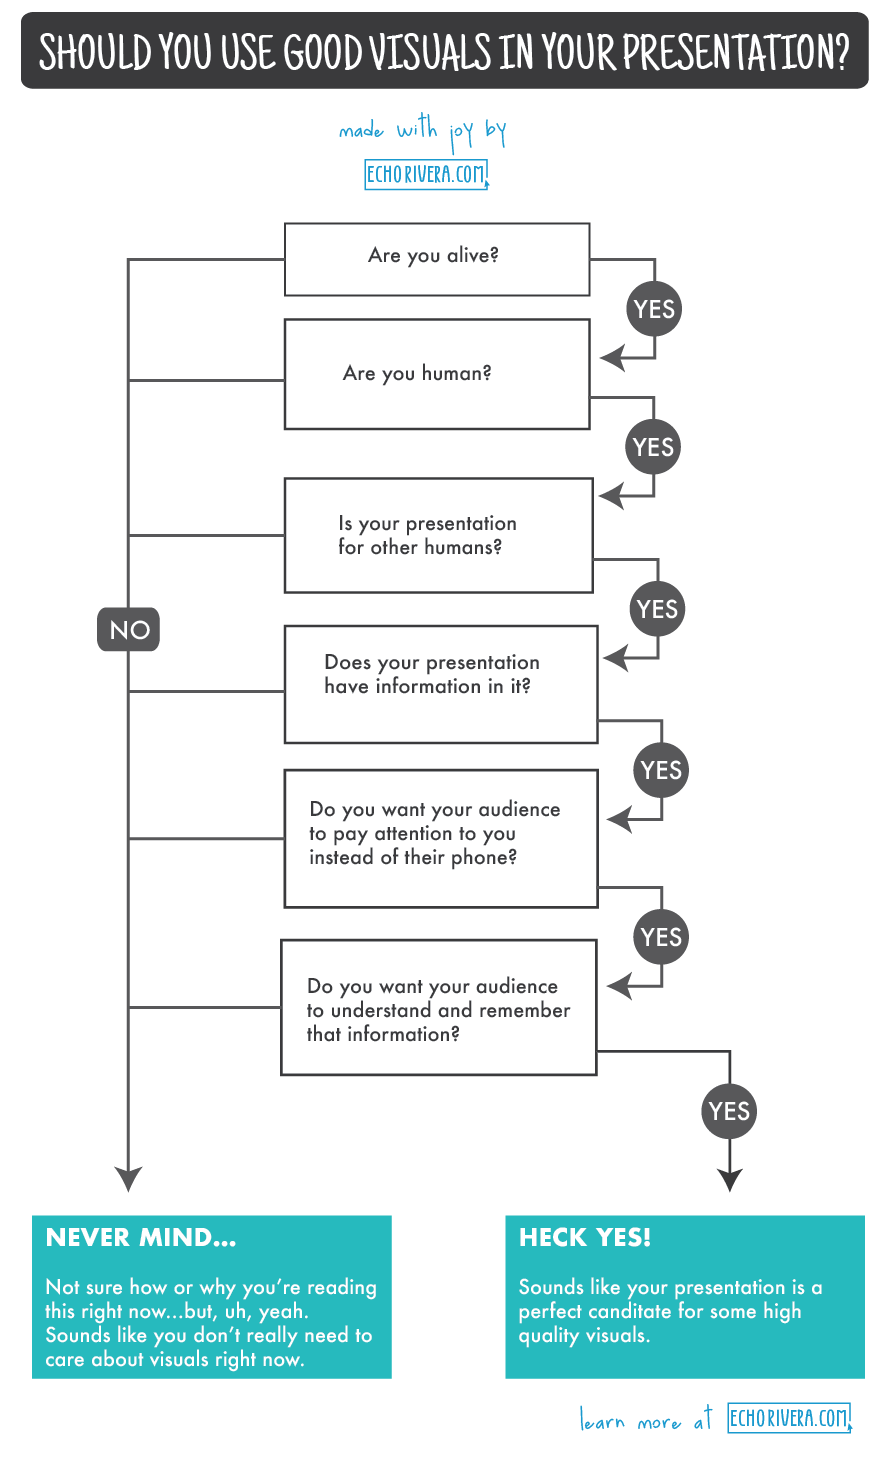 Echo Rivera's flowchart showing that YES, you need visuals in your presentations.